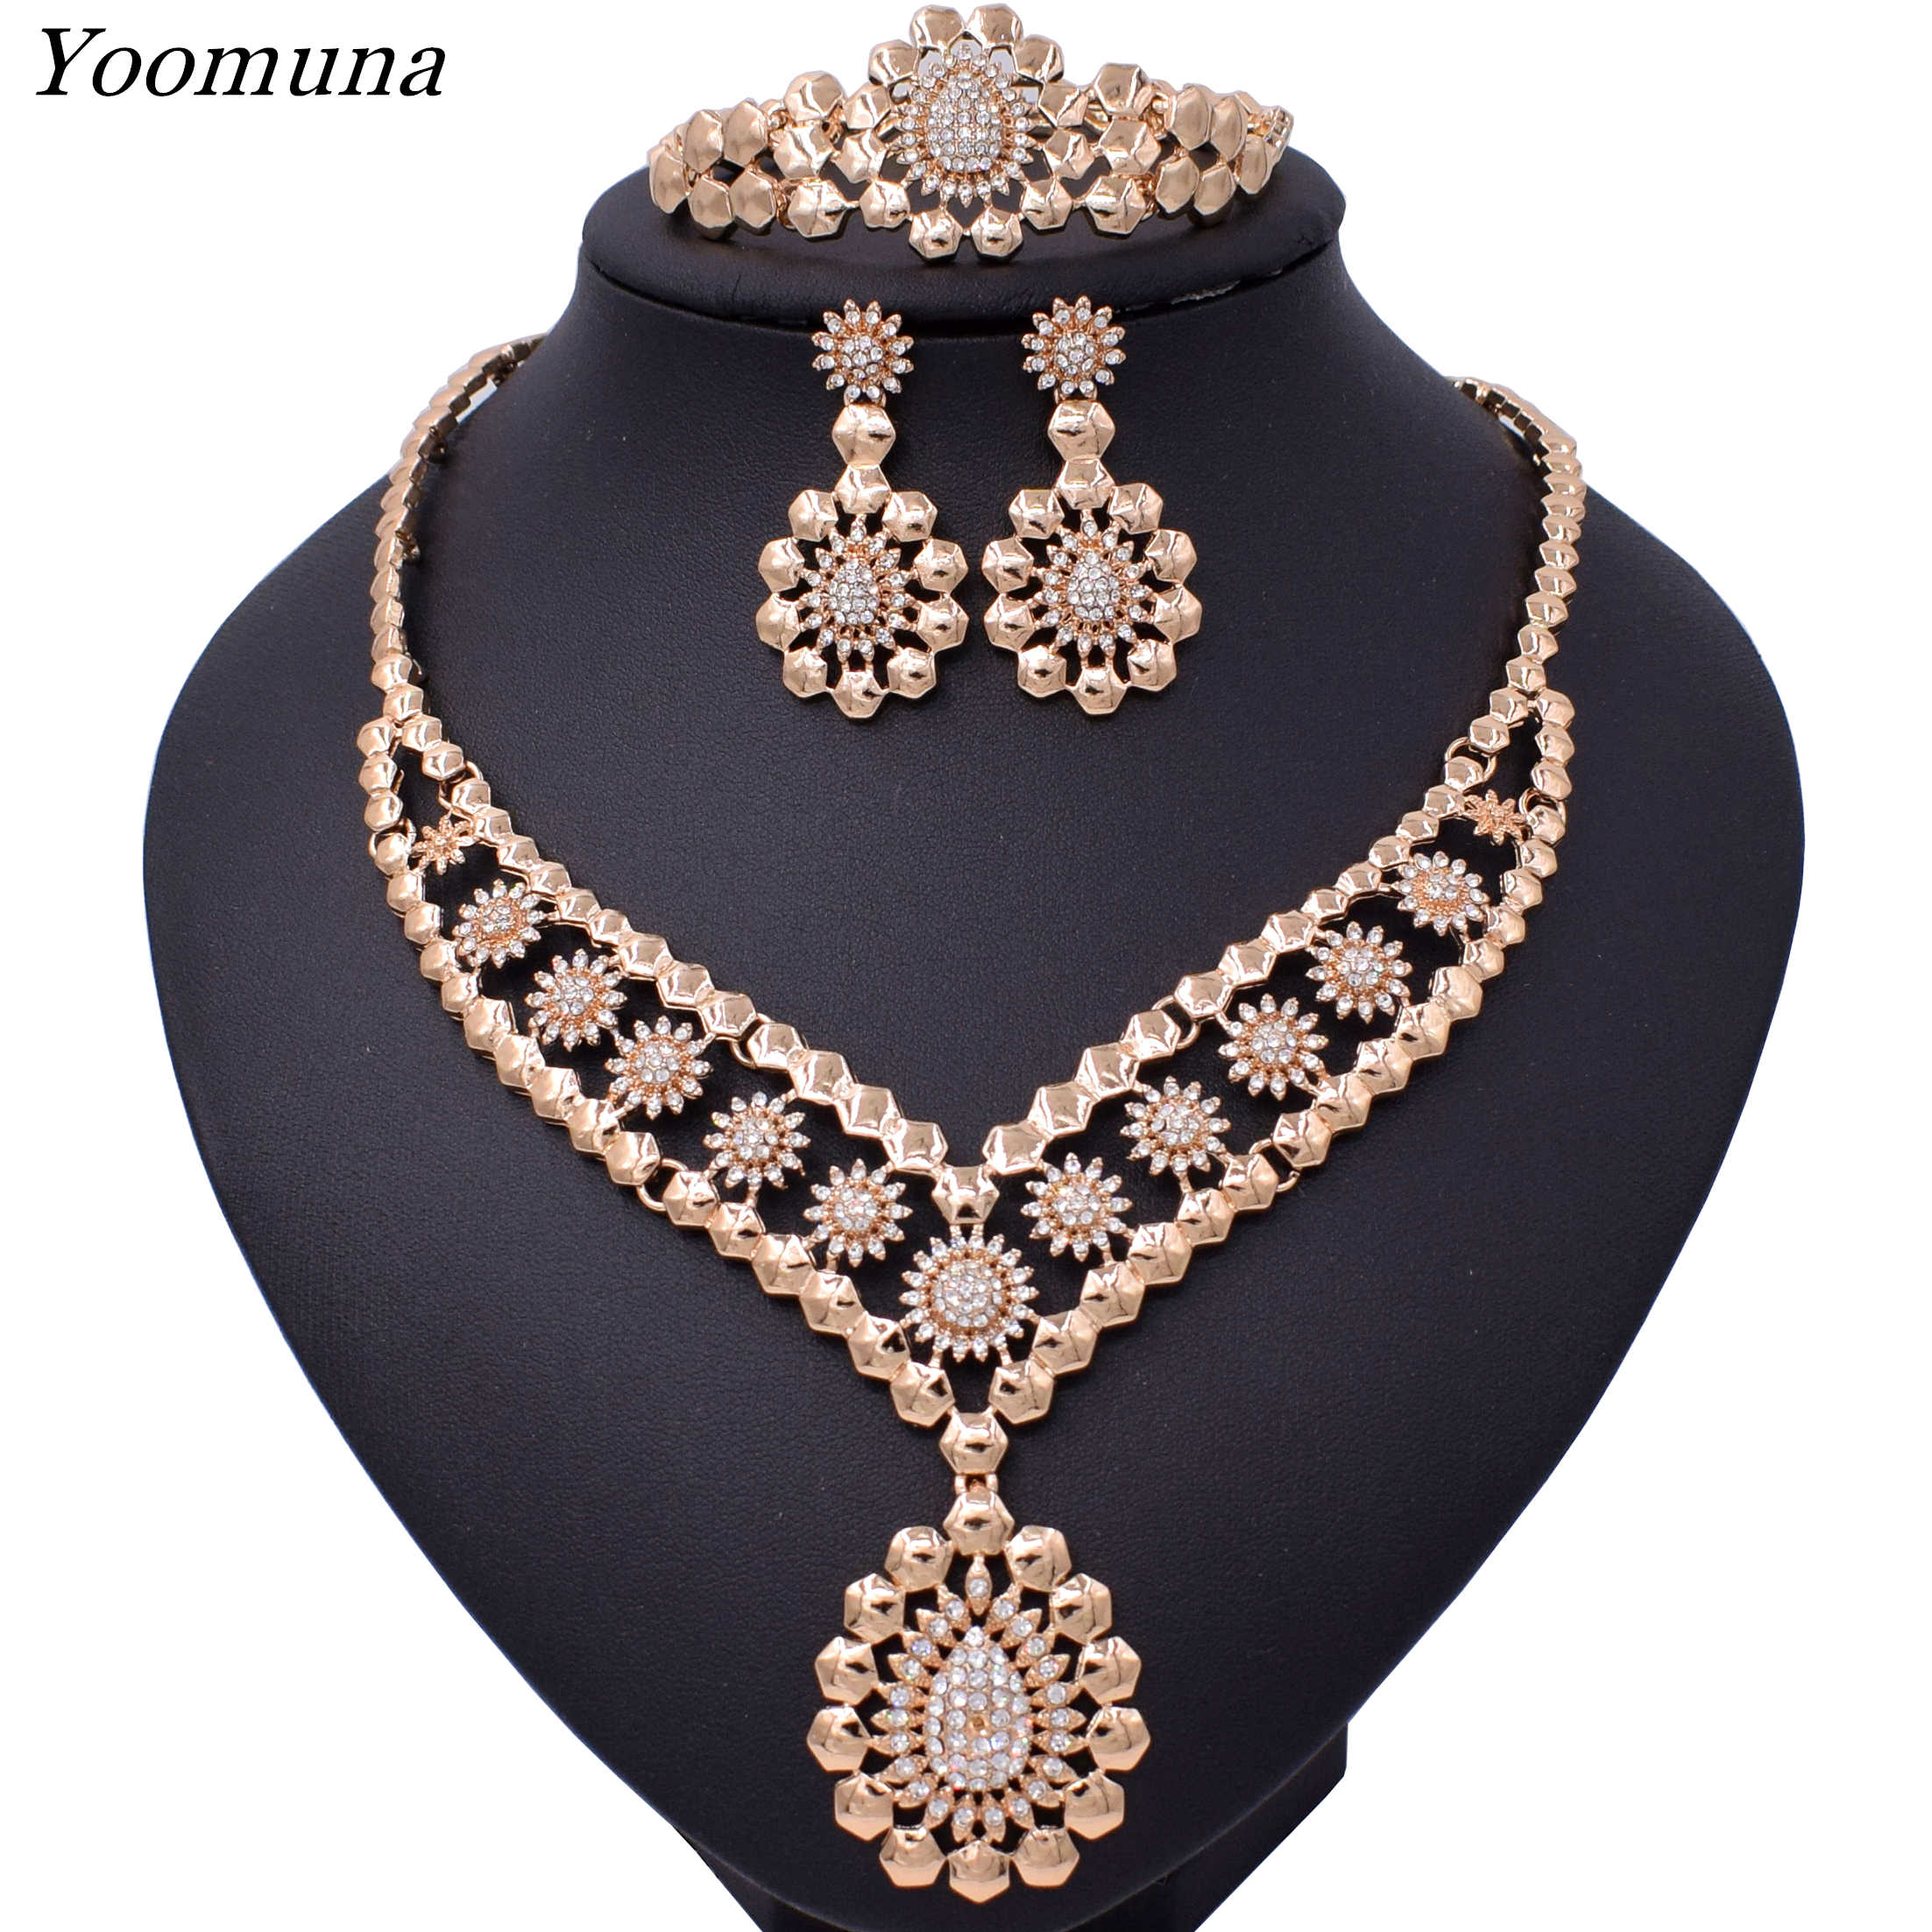 2019 Exquisite Dubai Gold Color Jewelry Set  Nigerian Wedding African Beads Jewelry Set Design necklace sets for women